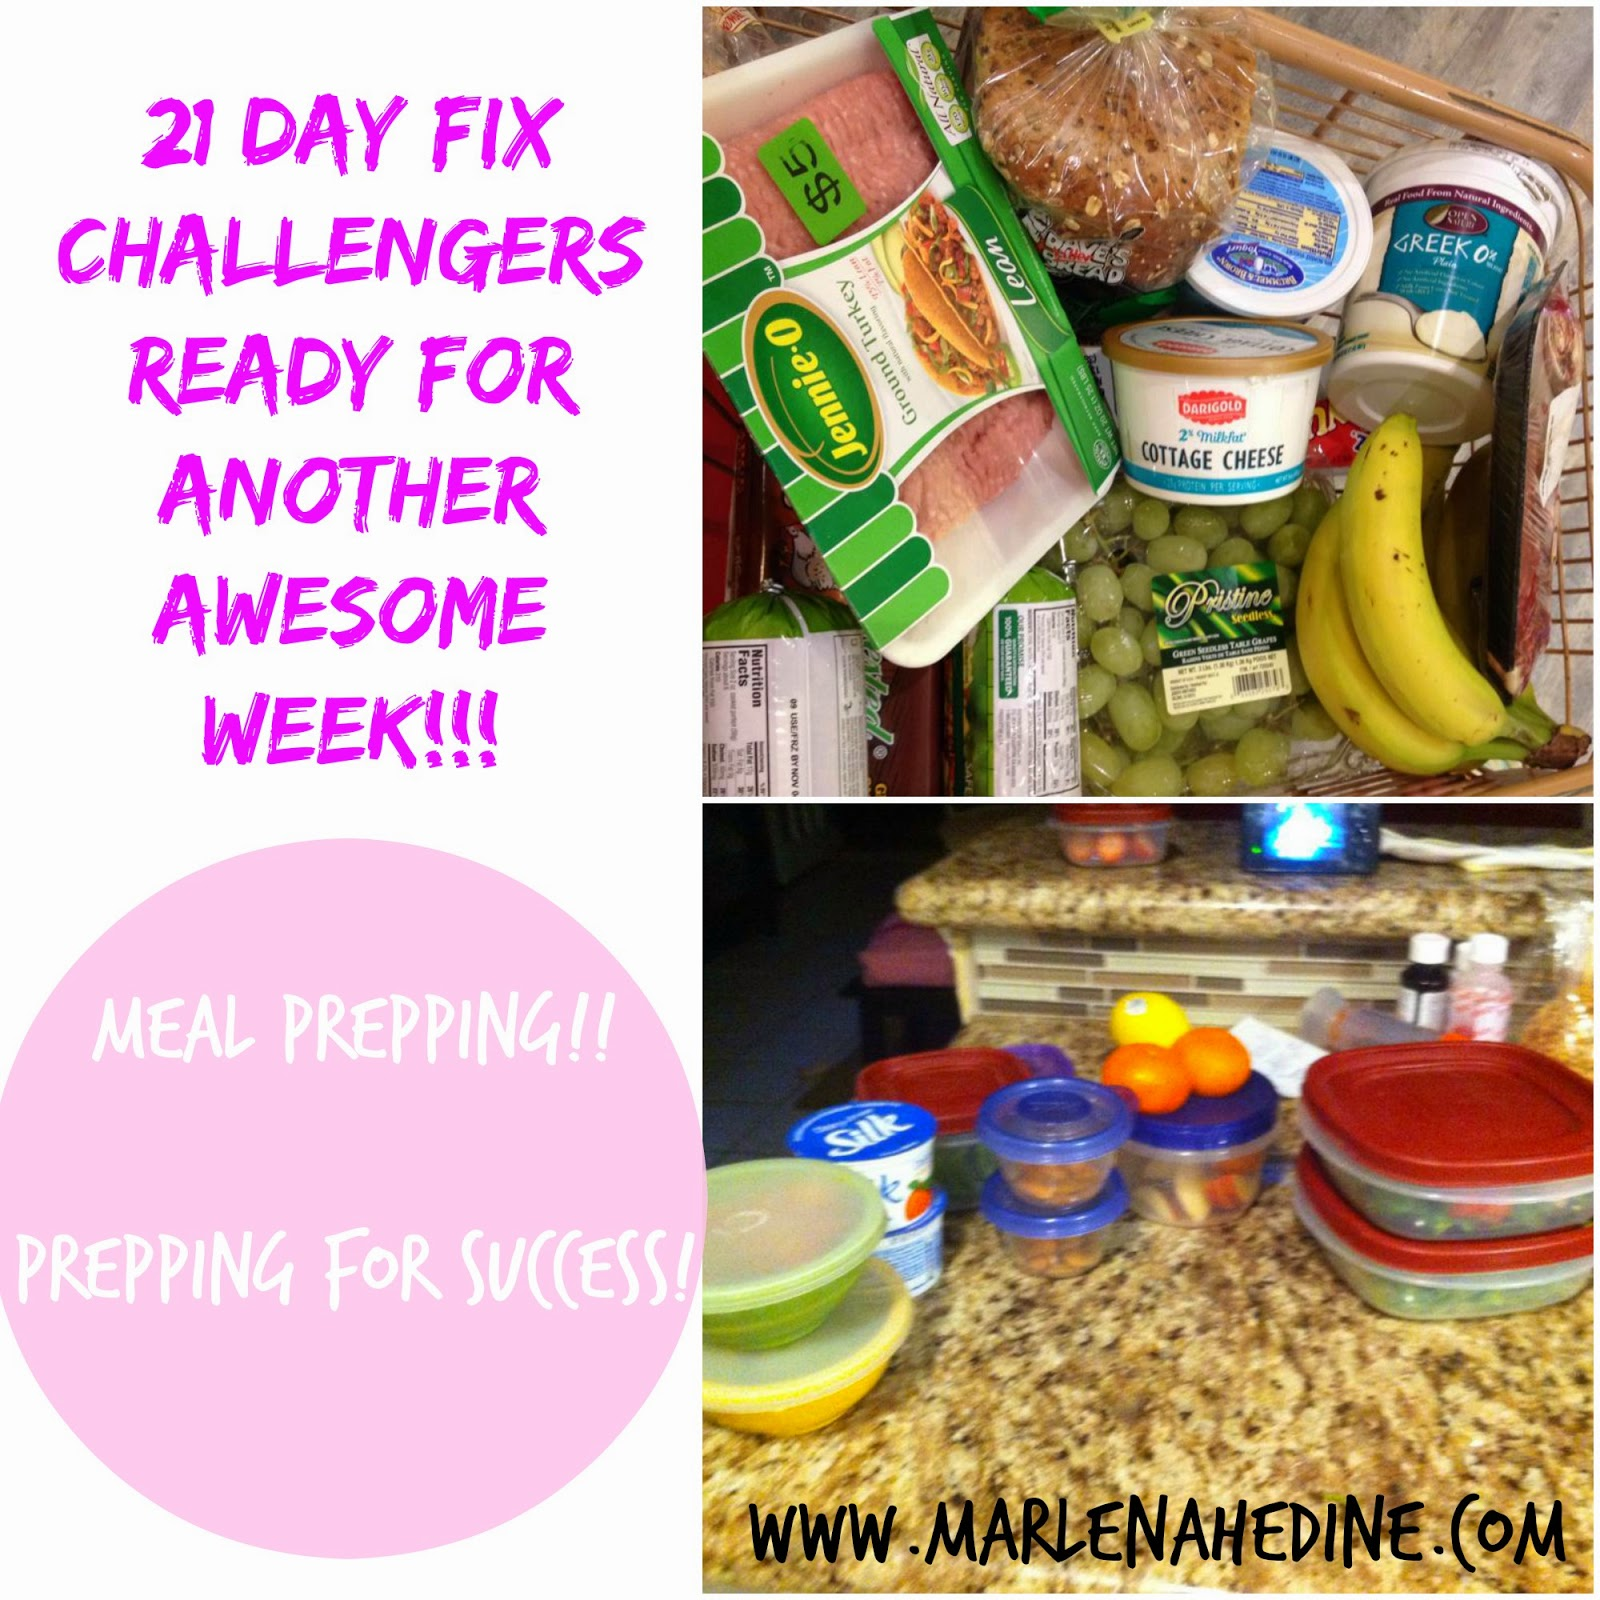 21 day fix challenge group, meal prep, plan for success